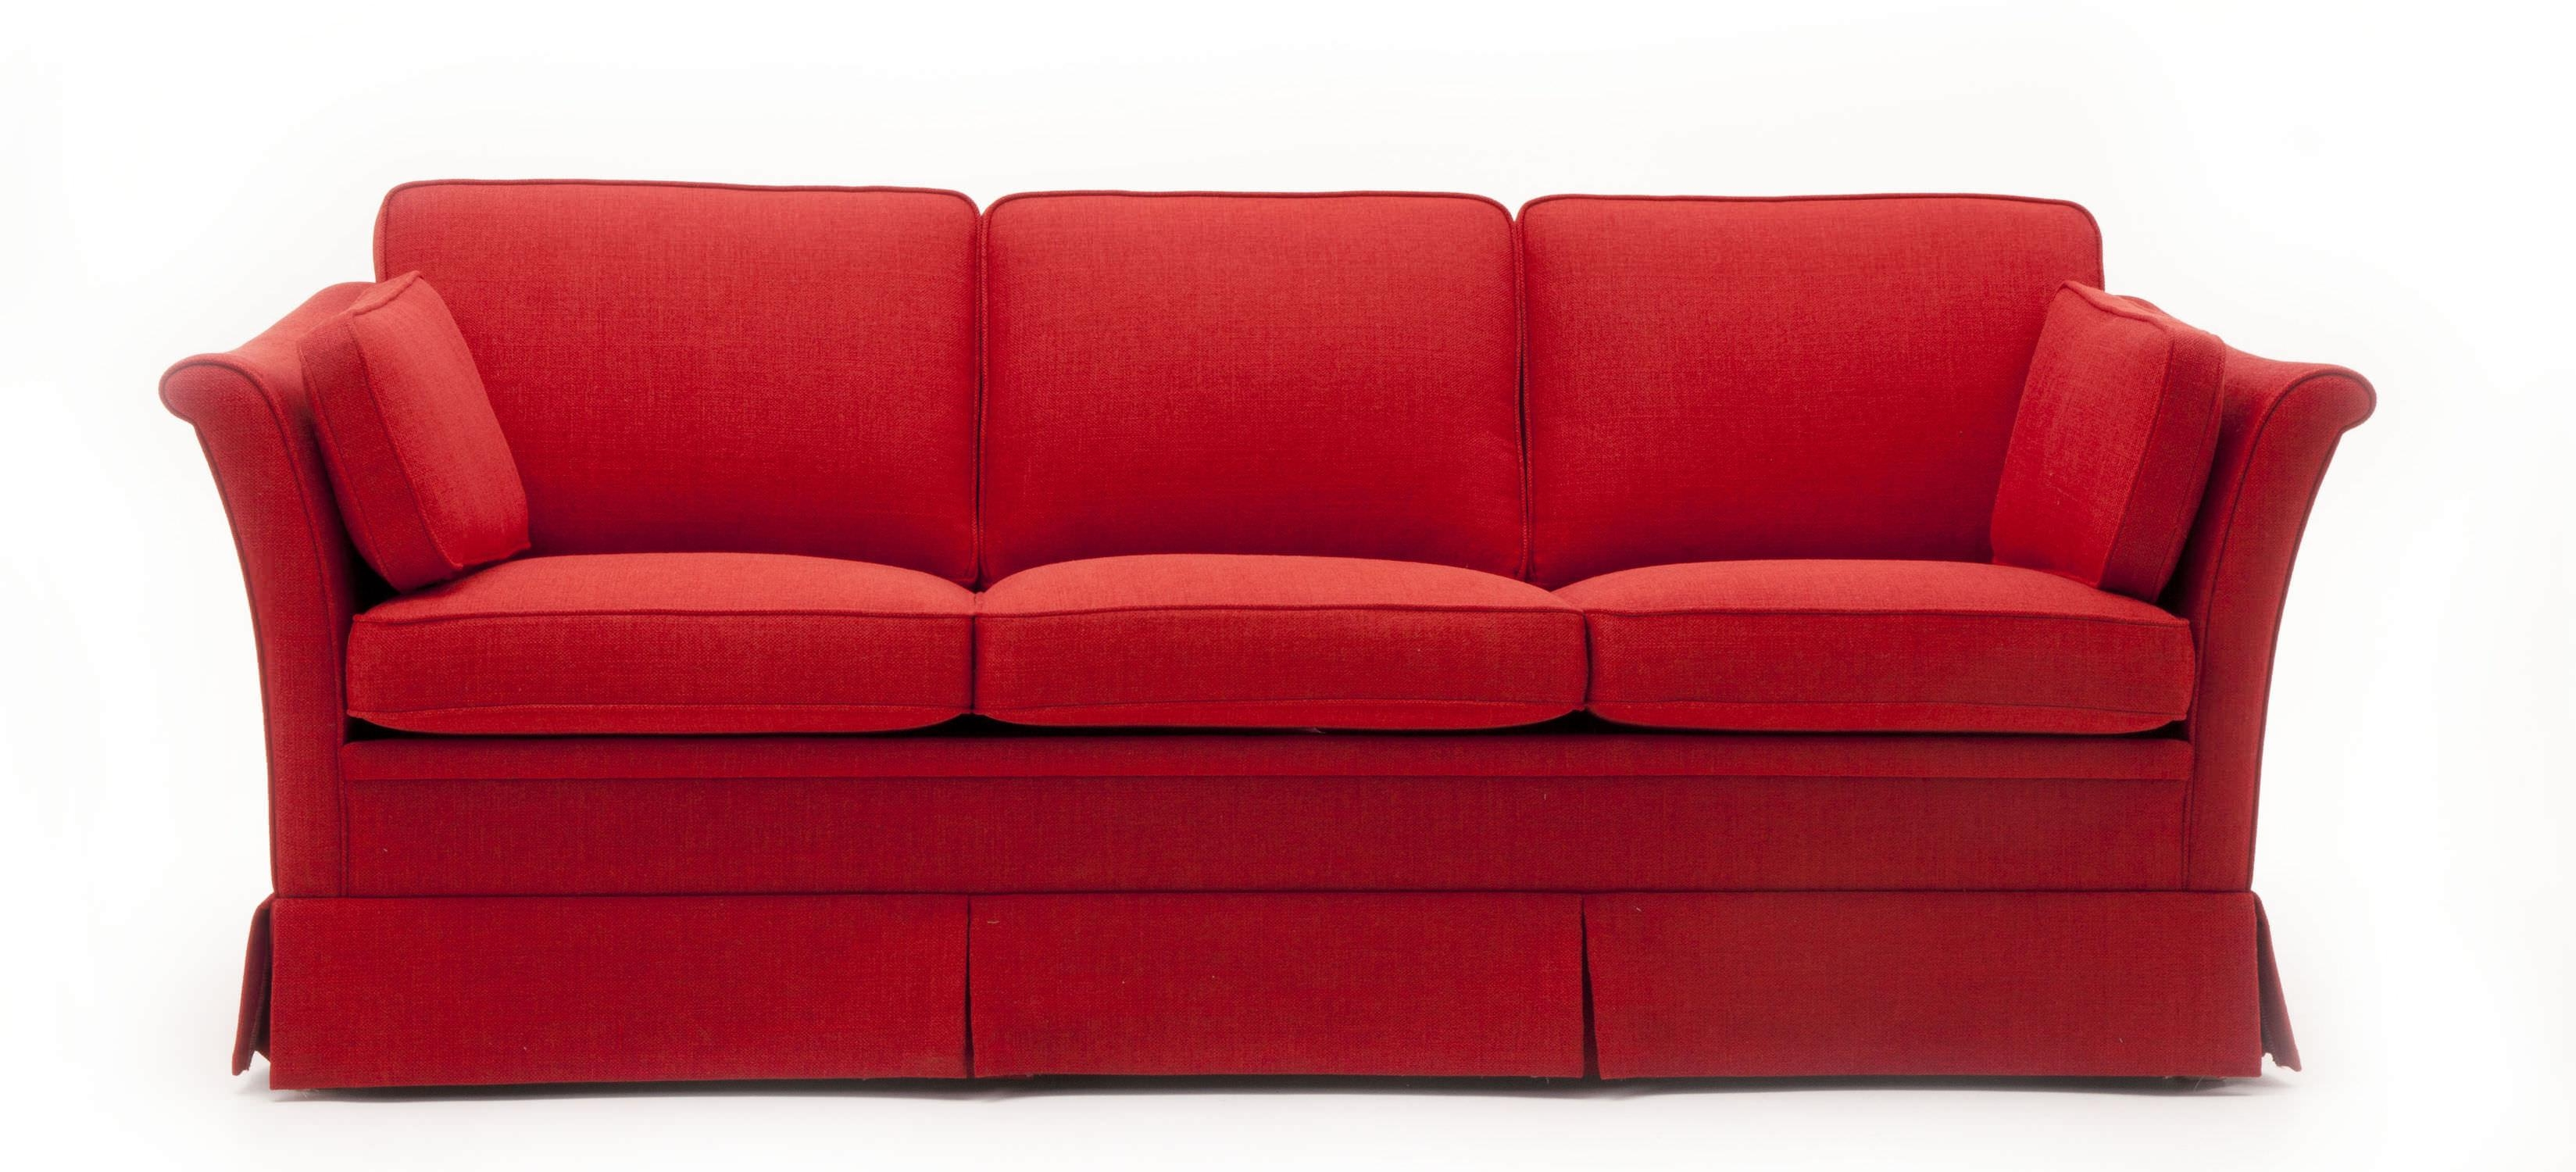 Traditional Sofa / Fabric / 3 Seater / With Removable Cover Pertaining To Sofas With Removable Covers (Image 19 of 20)